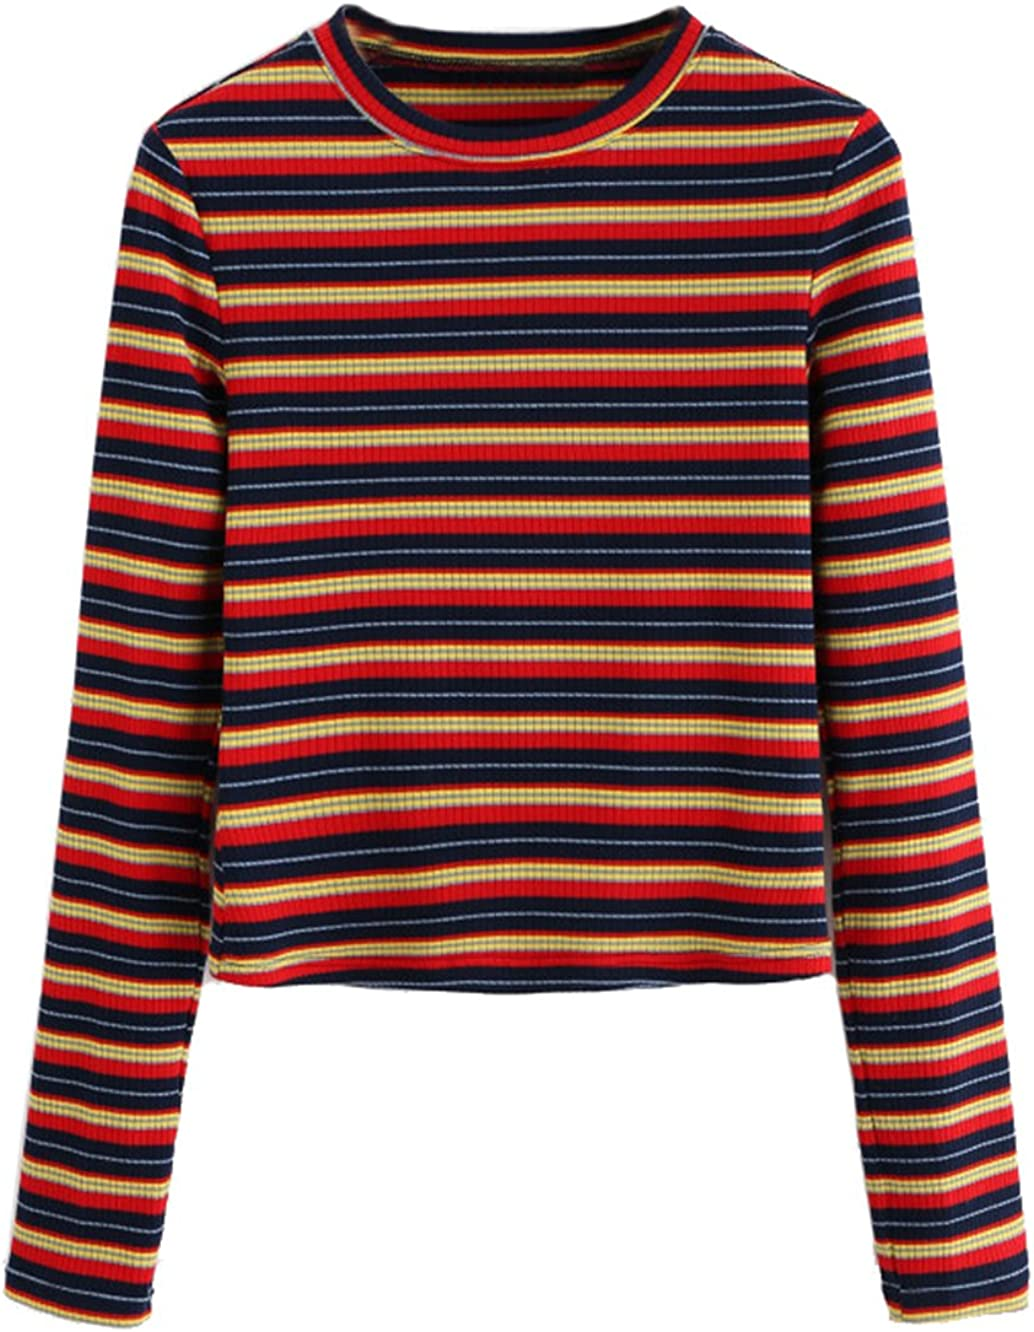 Women's 70s Shirts, Blouses, Hippie Tops Milumia Womens Casual Striped Ribbed Tee Knit Basic Crop Top $19.99 AT vintagedancer.com